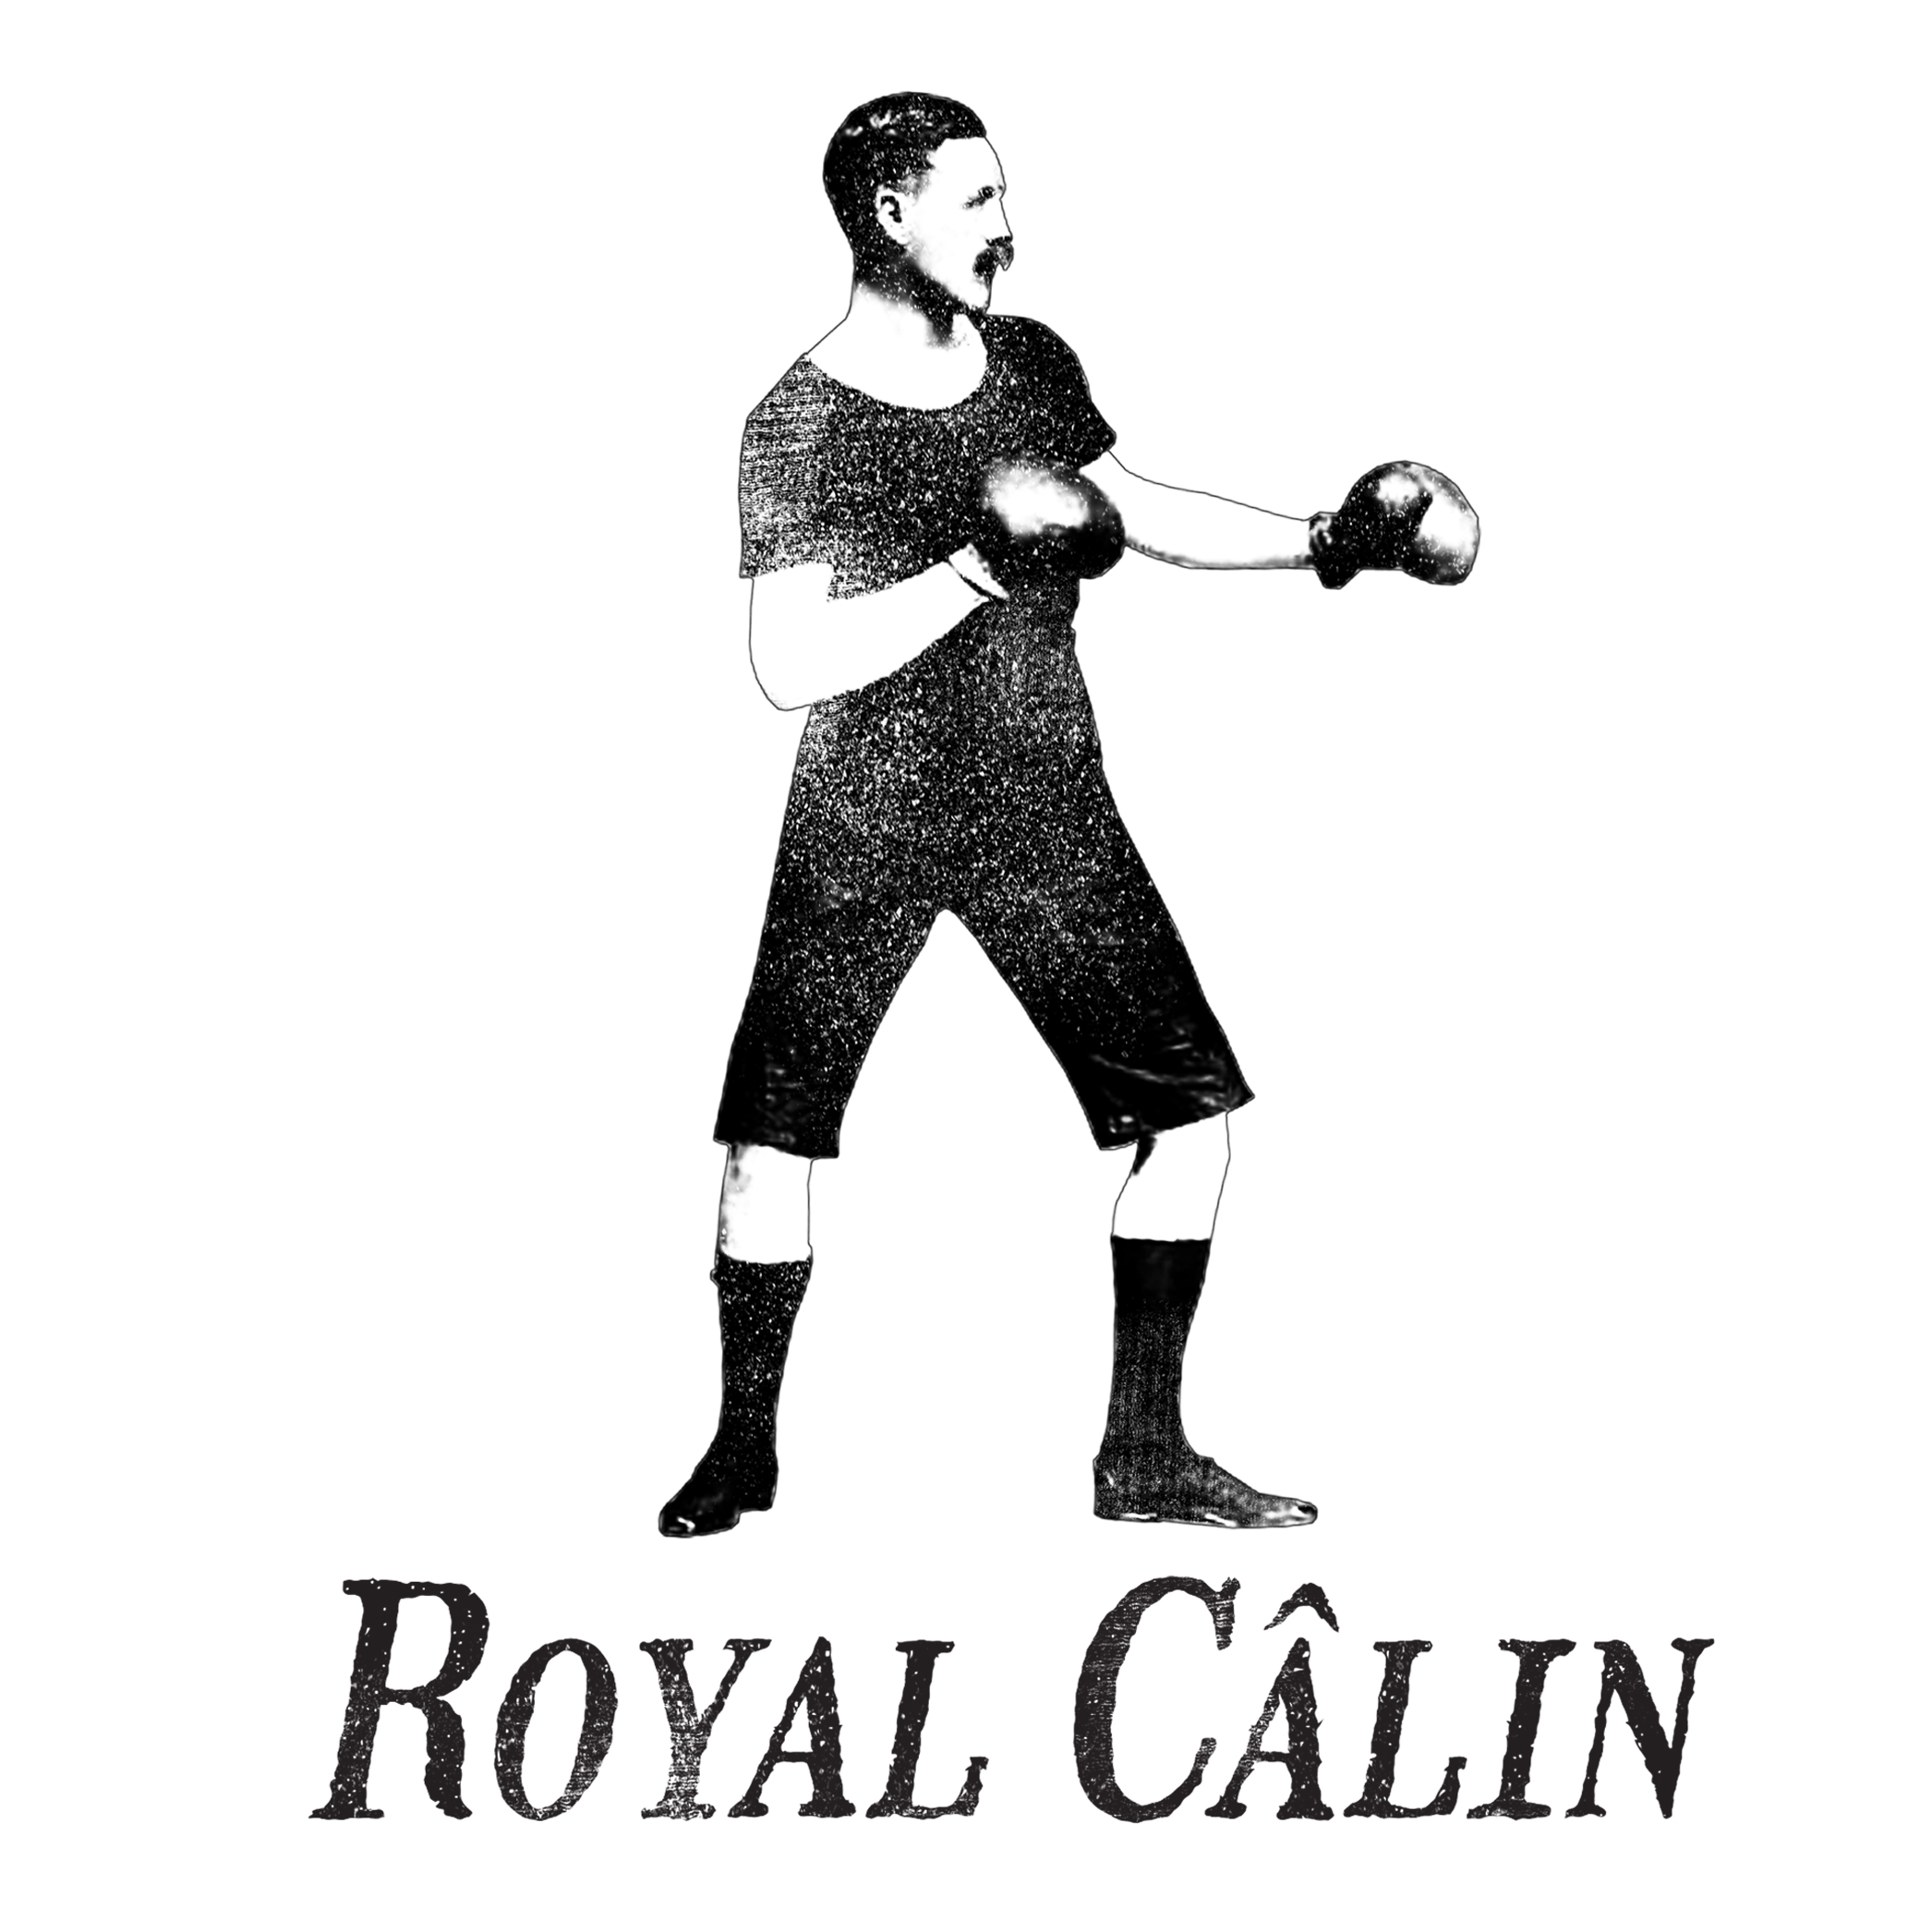 logo royal câlin last2.jpg